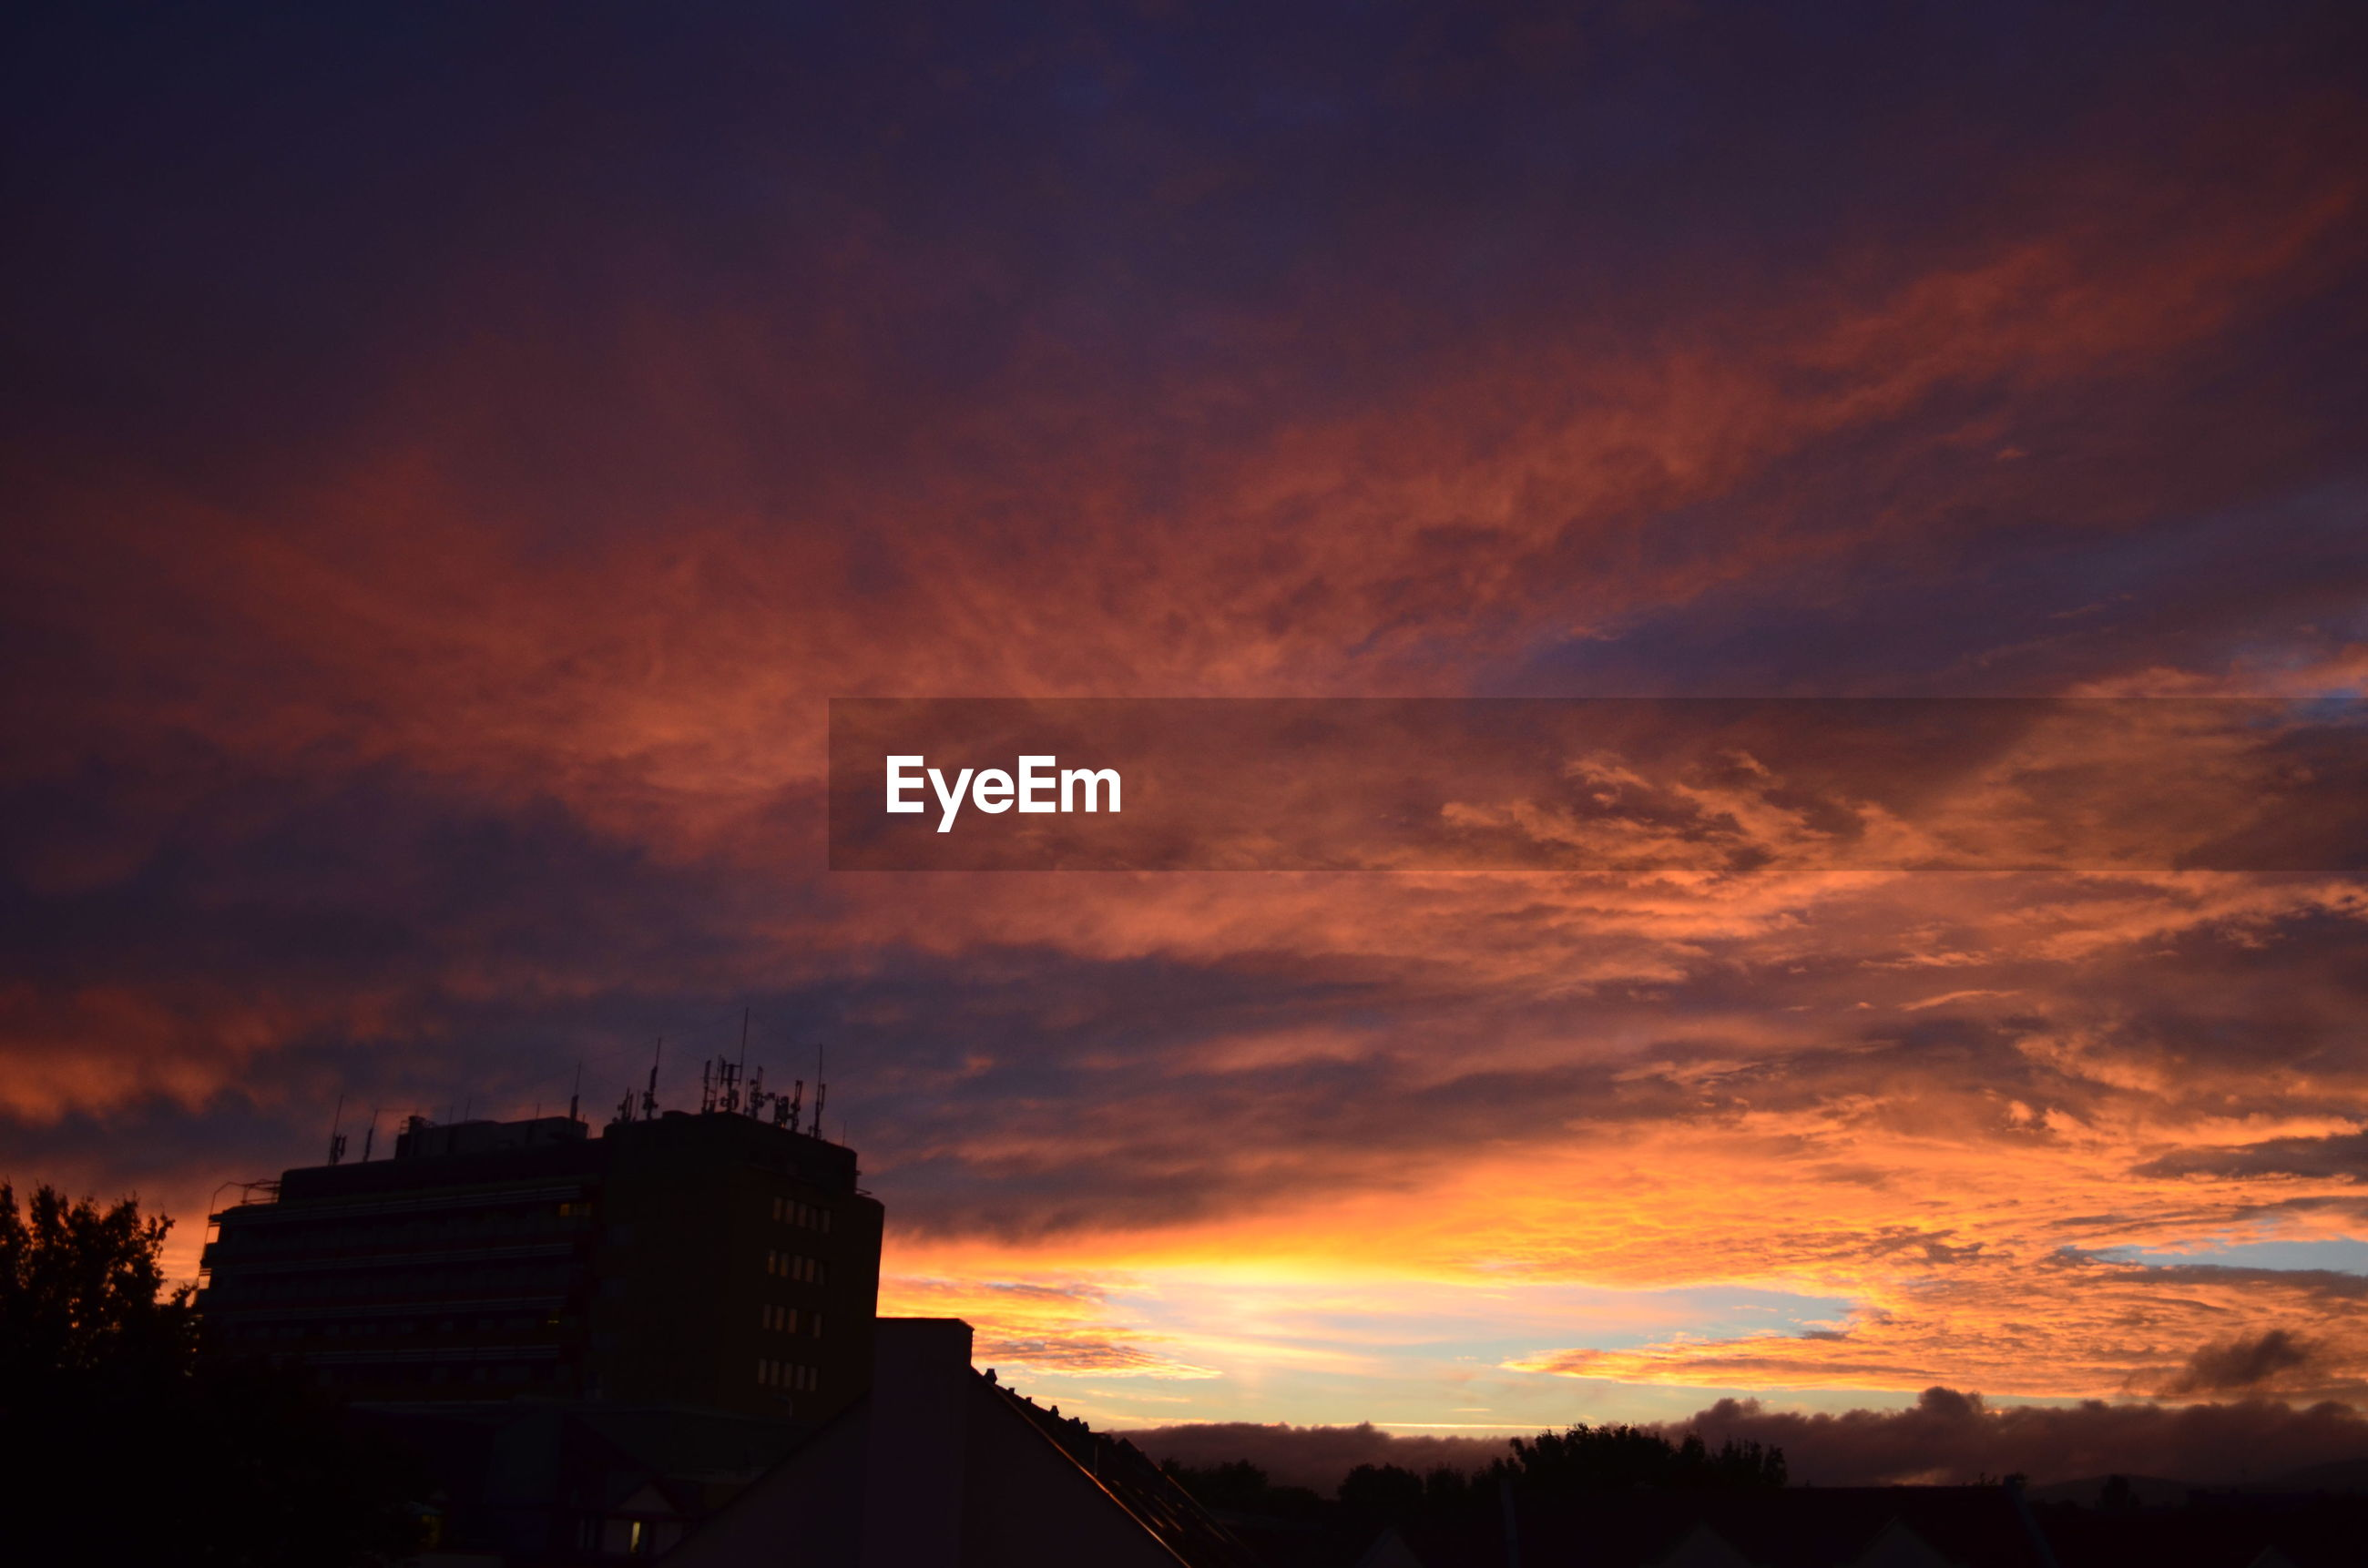 sunset, architecture, built structure, building exterior, silhouette, sky, dusk, city, high section, scenics, cloud - sky, cloud, orange color, outdoors, dramatic sky, nature, tranquility, tall - high, beauty in nature, tranquil scene, no people, moody sky, city life, majestic, storm cloud, cloudscape, atmospheric mood